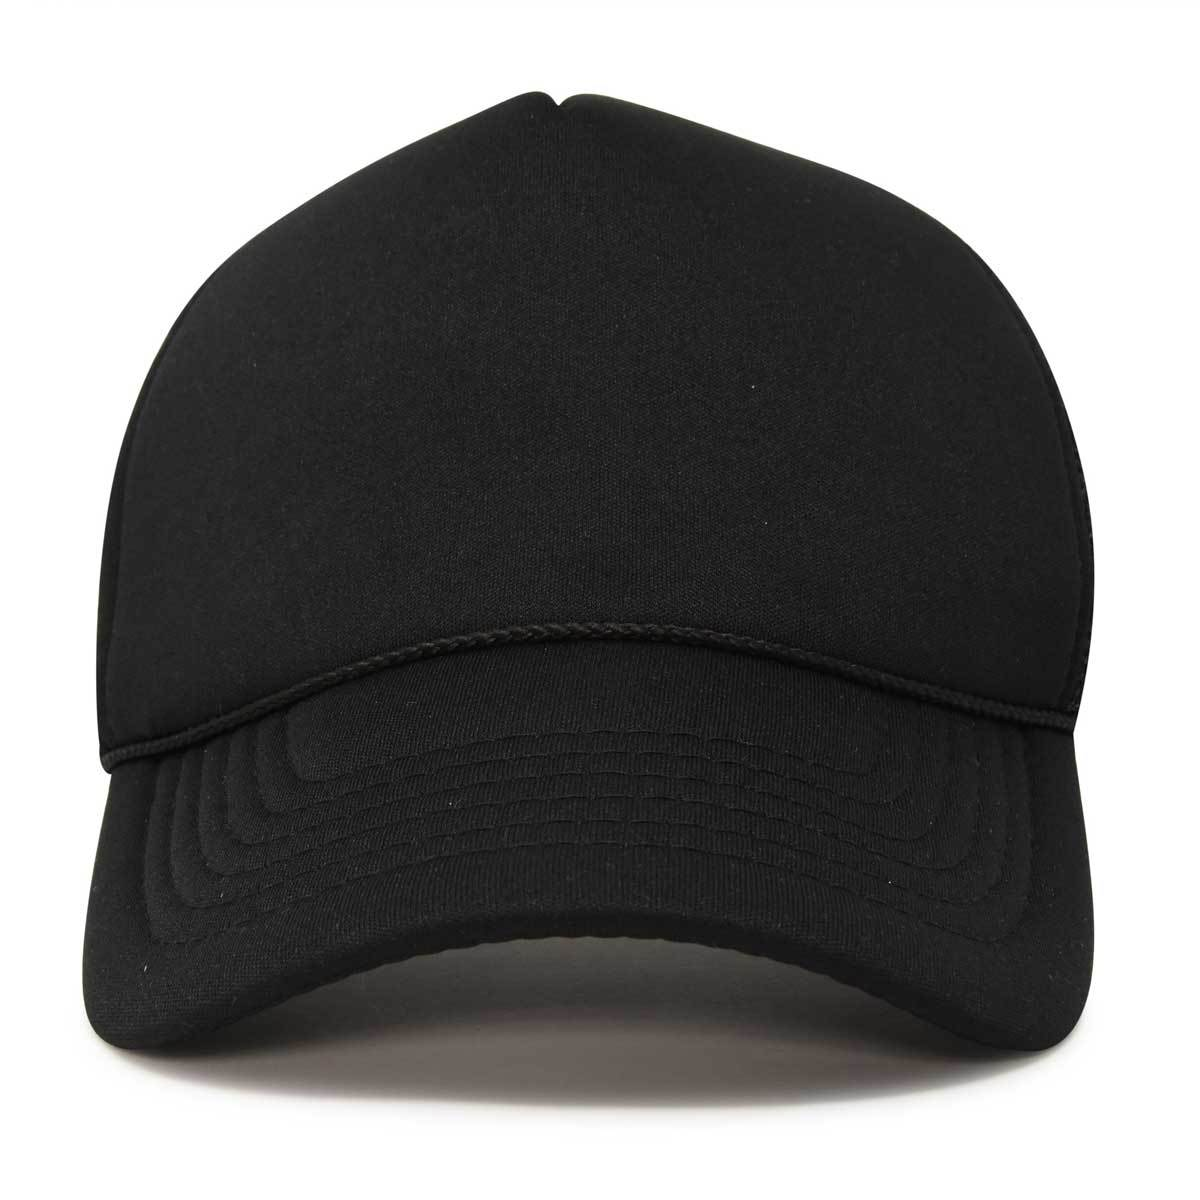 Basic Trucker Hat with Mesh Back Adjustable Snapback Cap